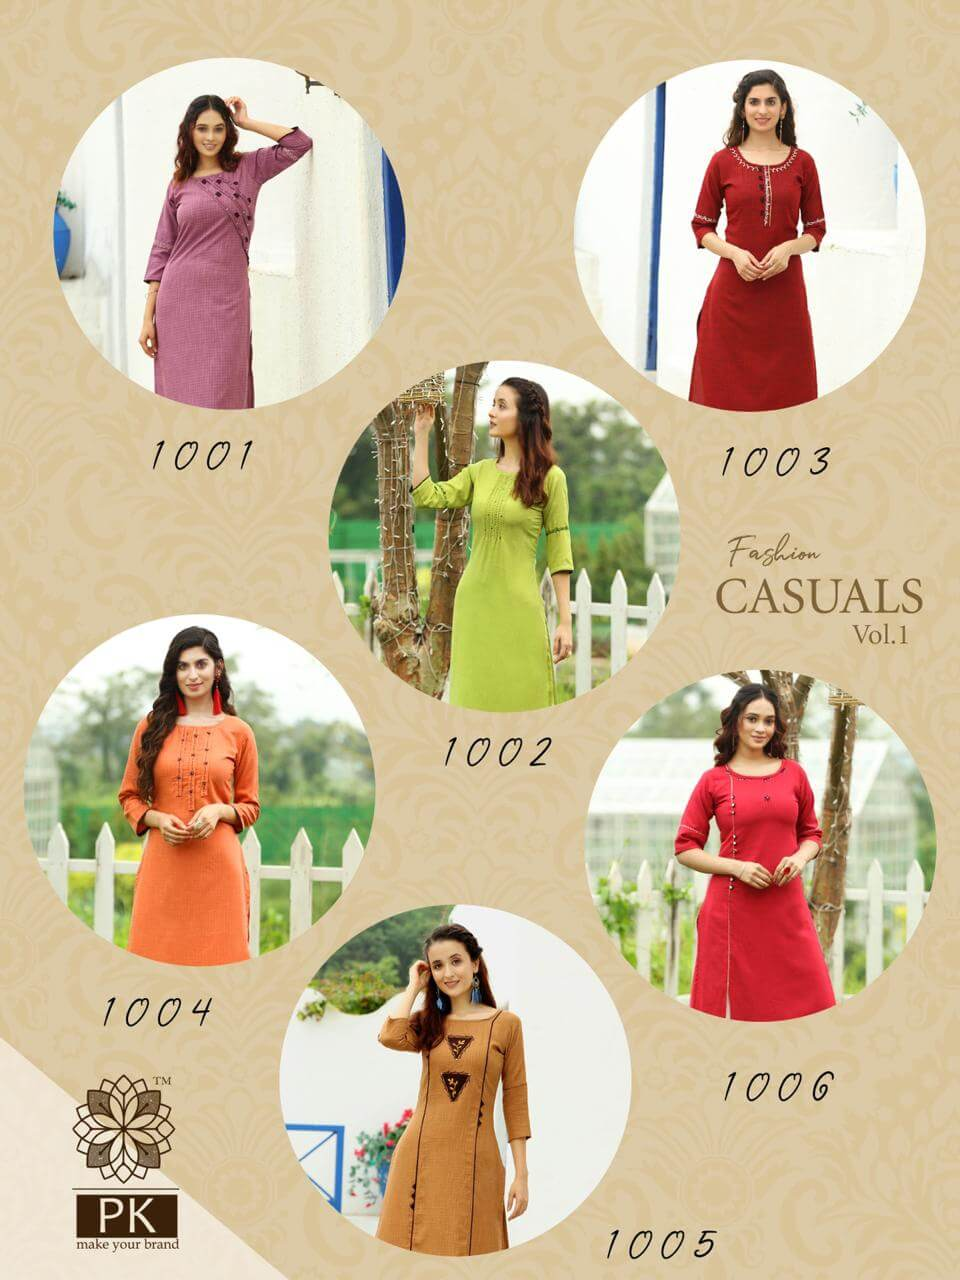 Aradhna Fashion Casuals 1 collection 1